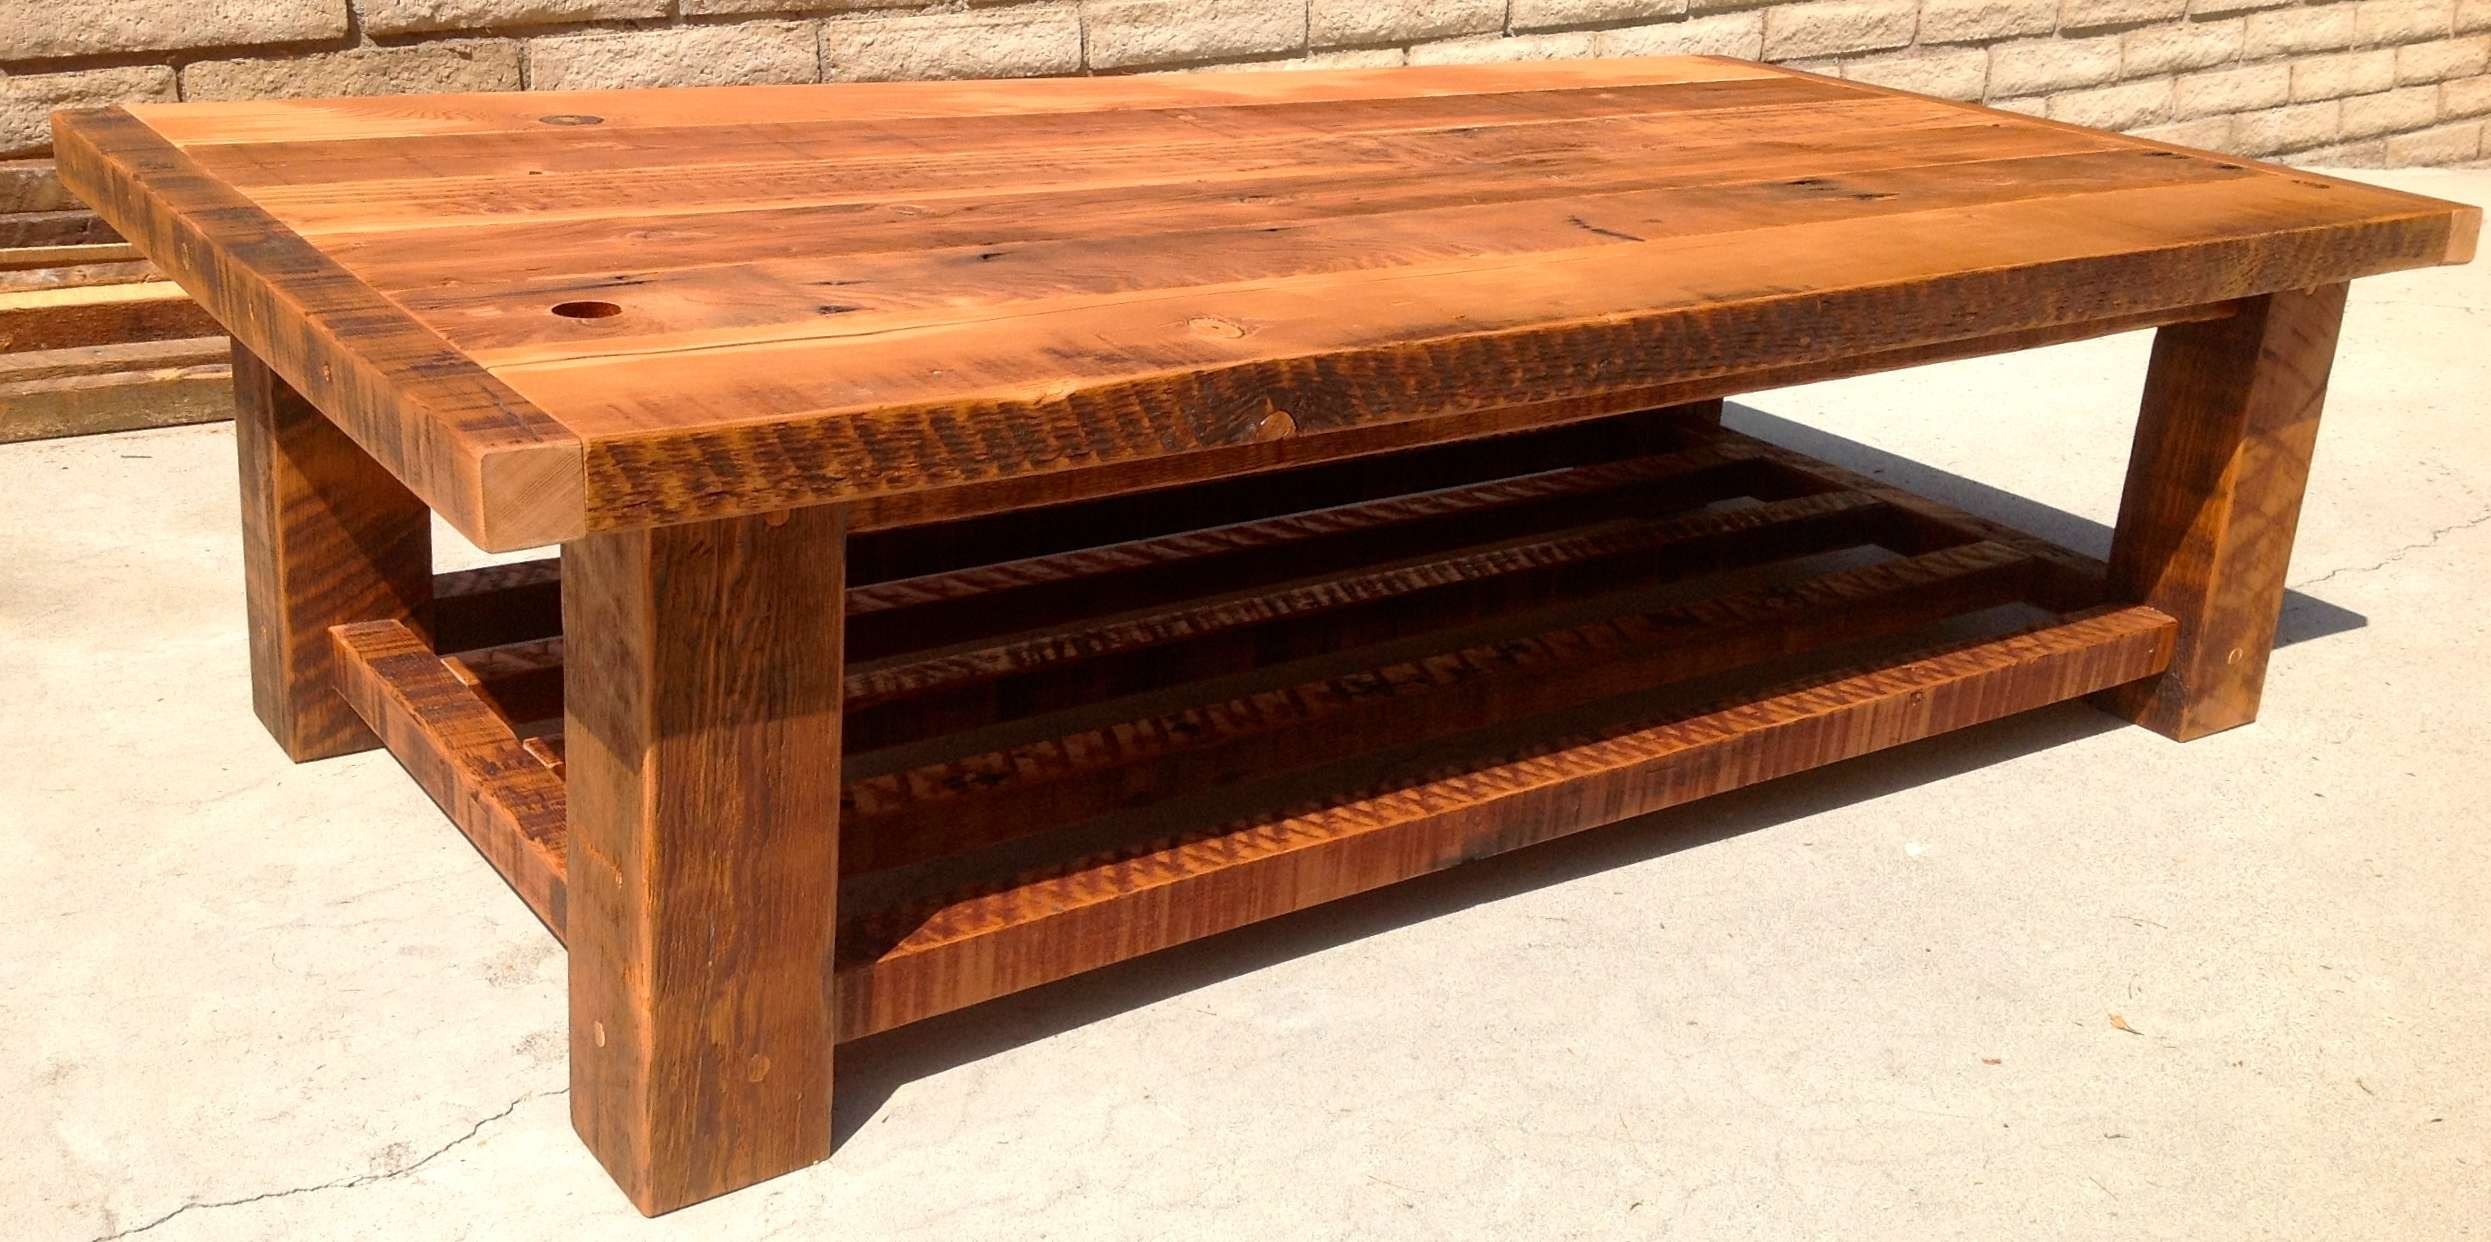 Coffee Table : Marvelous White Oak Coffee Table Cherry Coffee With Regard To 2018 Solid Wood Coffee Tables (View 4 of 20)